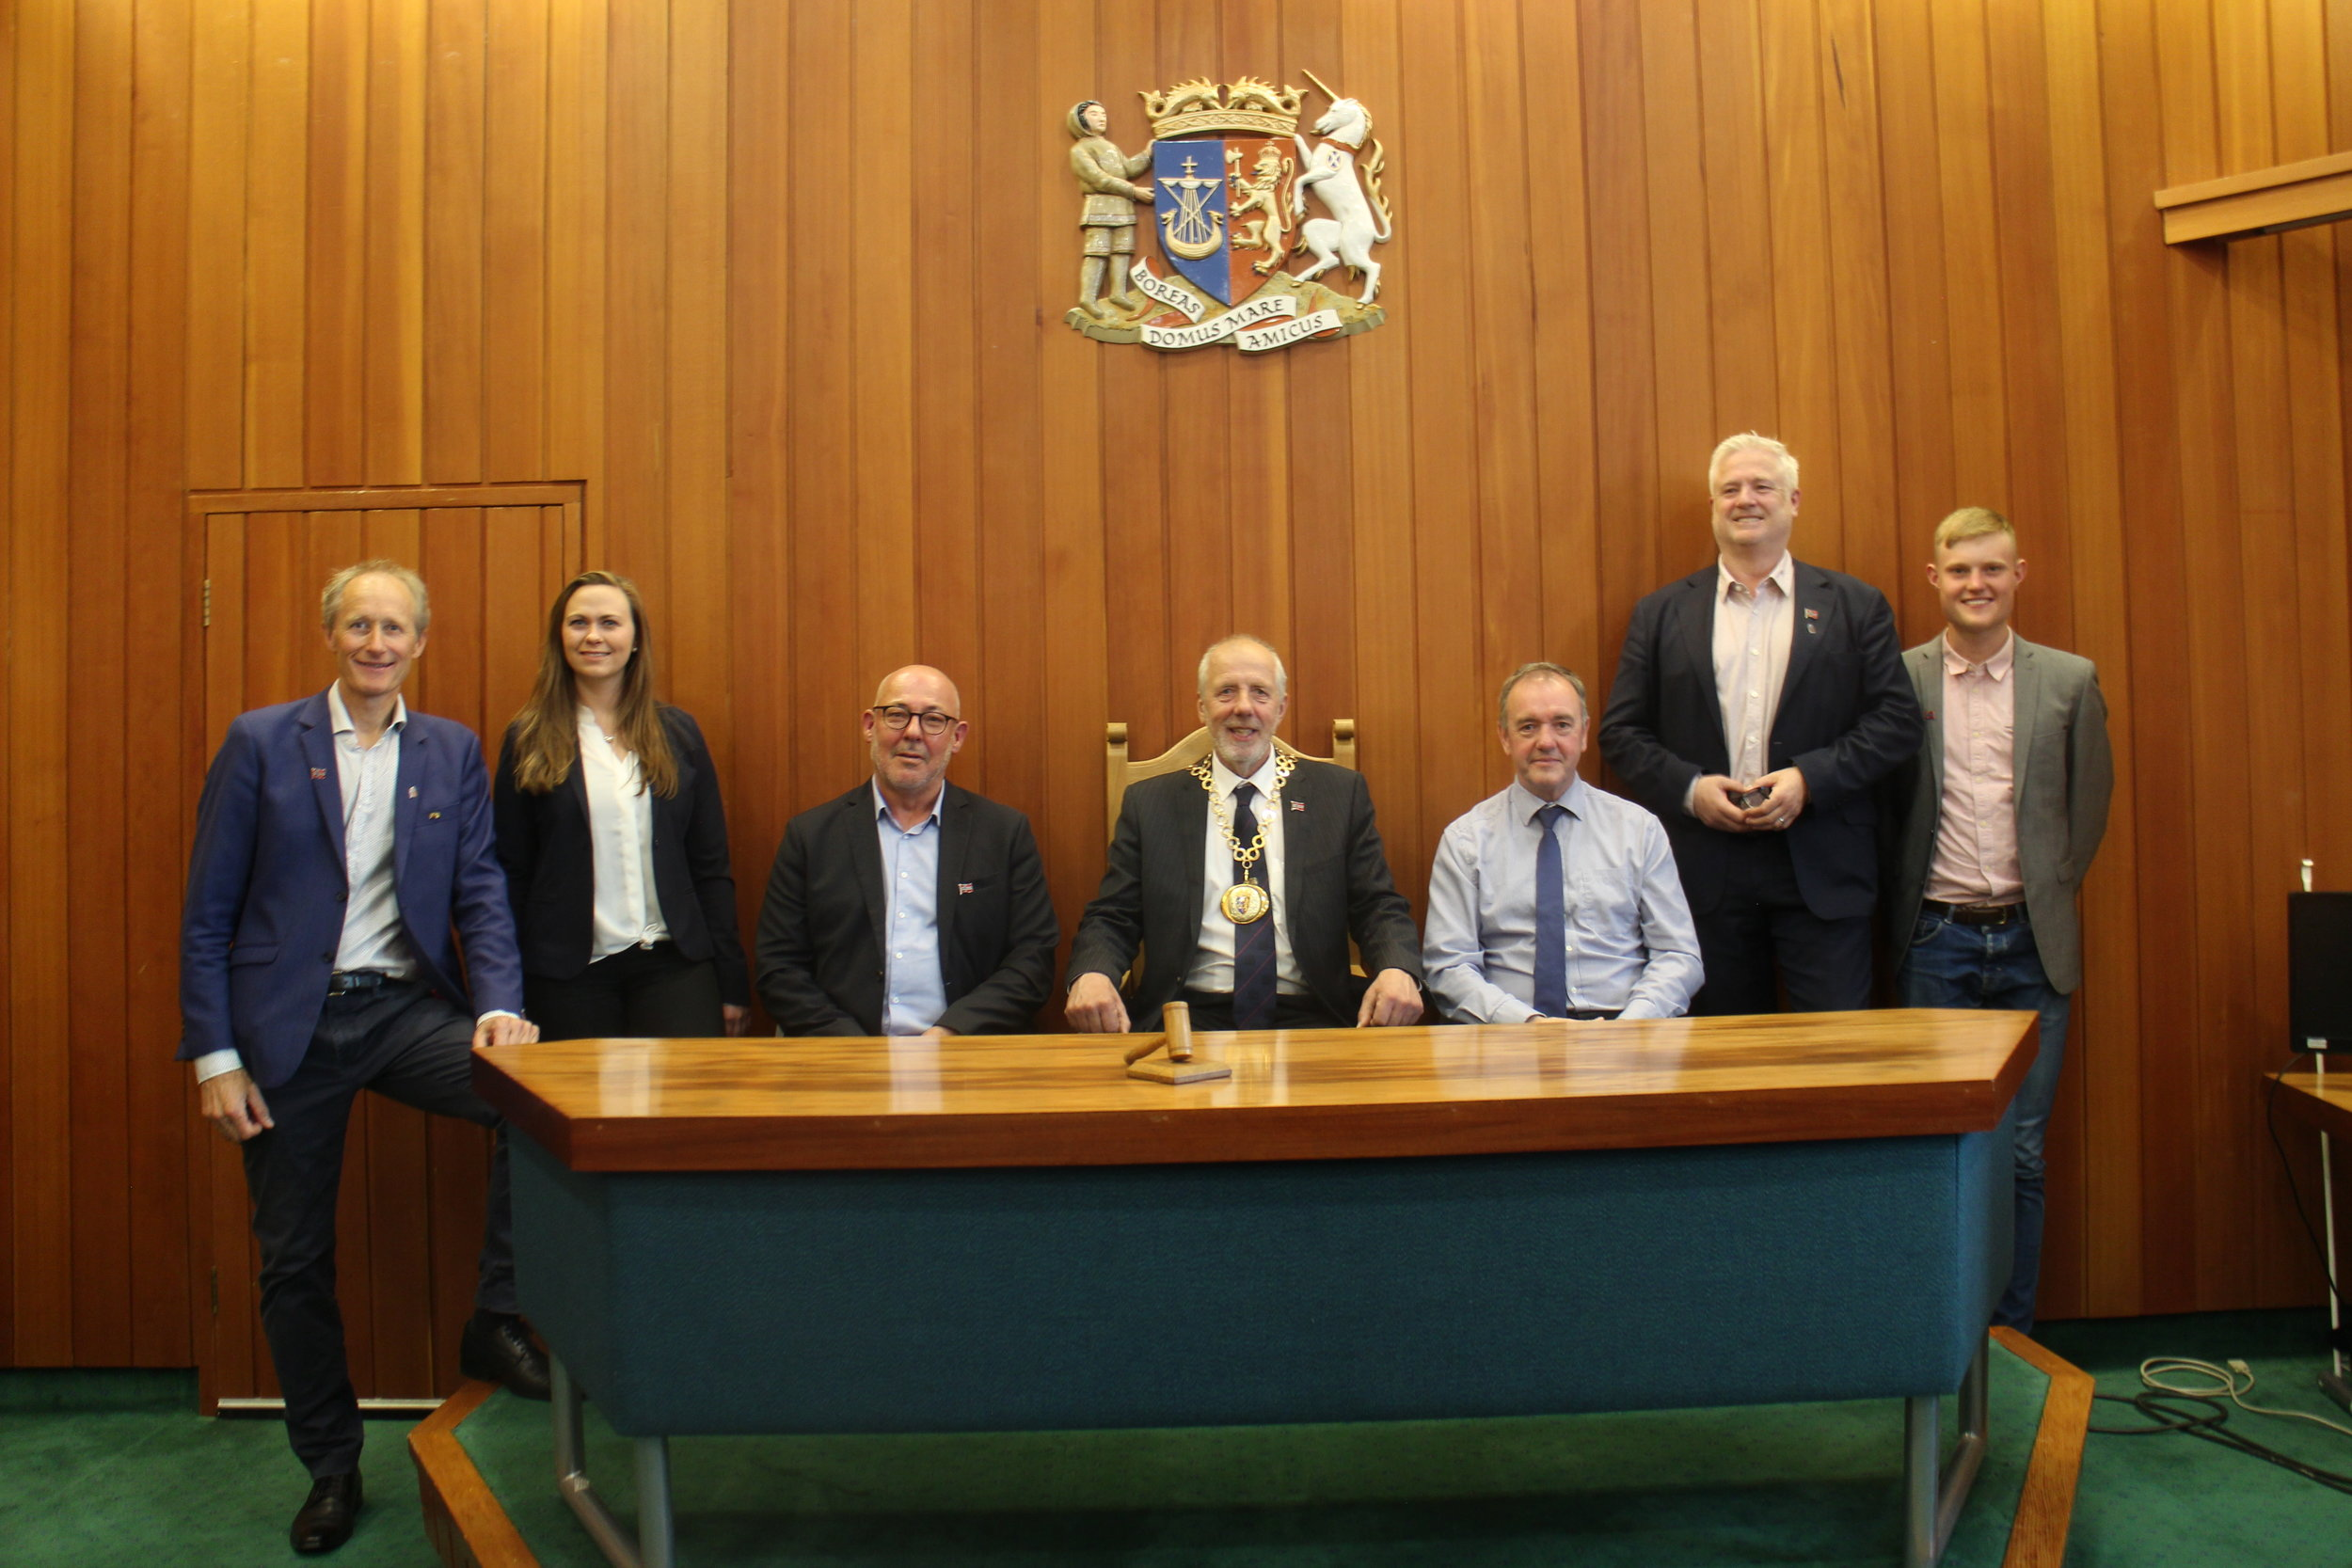 Inside the Orkney Council Chambers (left to right - Trond Strømgren, Maria Brandsøy, Stein Kvalsun, Harvey Johnston, James Stockan, Owe Hagesæther, Mark Purkis) (Photo: Mikel Gonsholt)